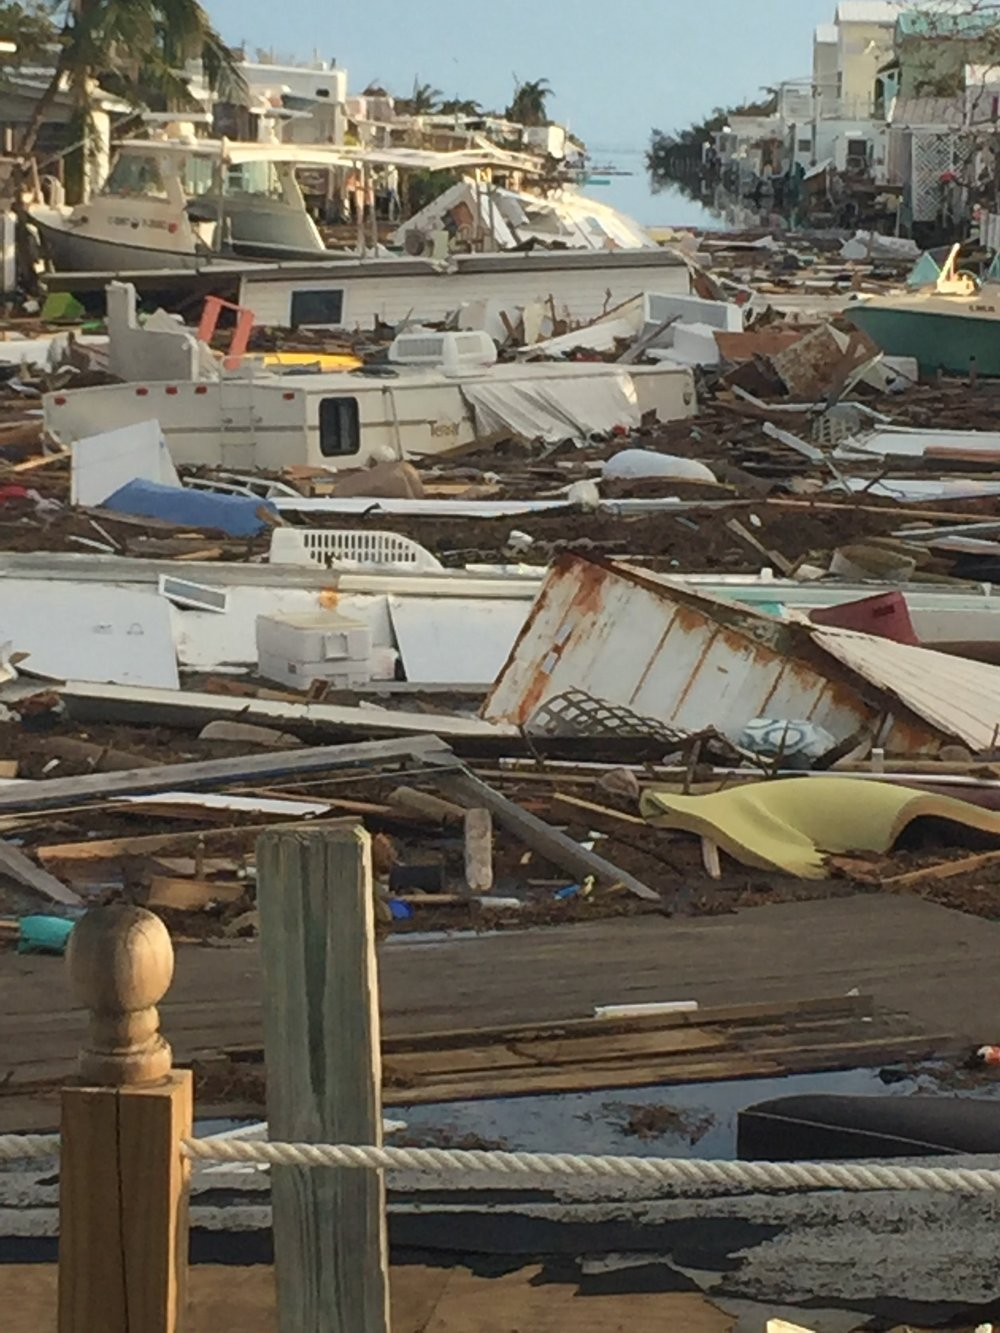 Post-hurricane Irma devastation in the Florida Keys.